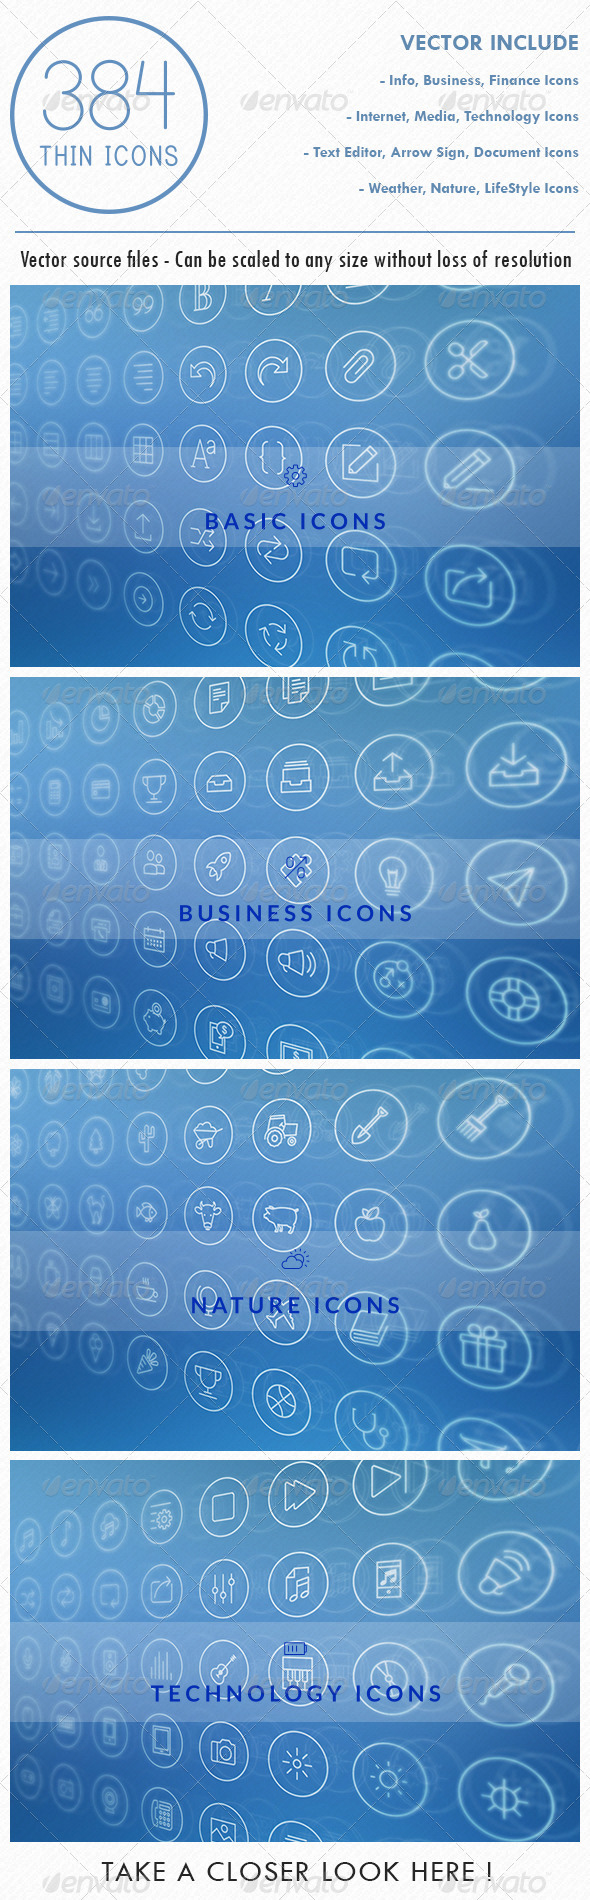 GraphicRiver 384 Vector Thin Icons 6766909